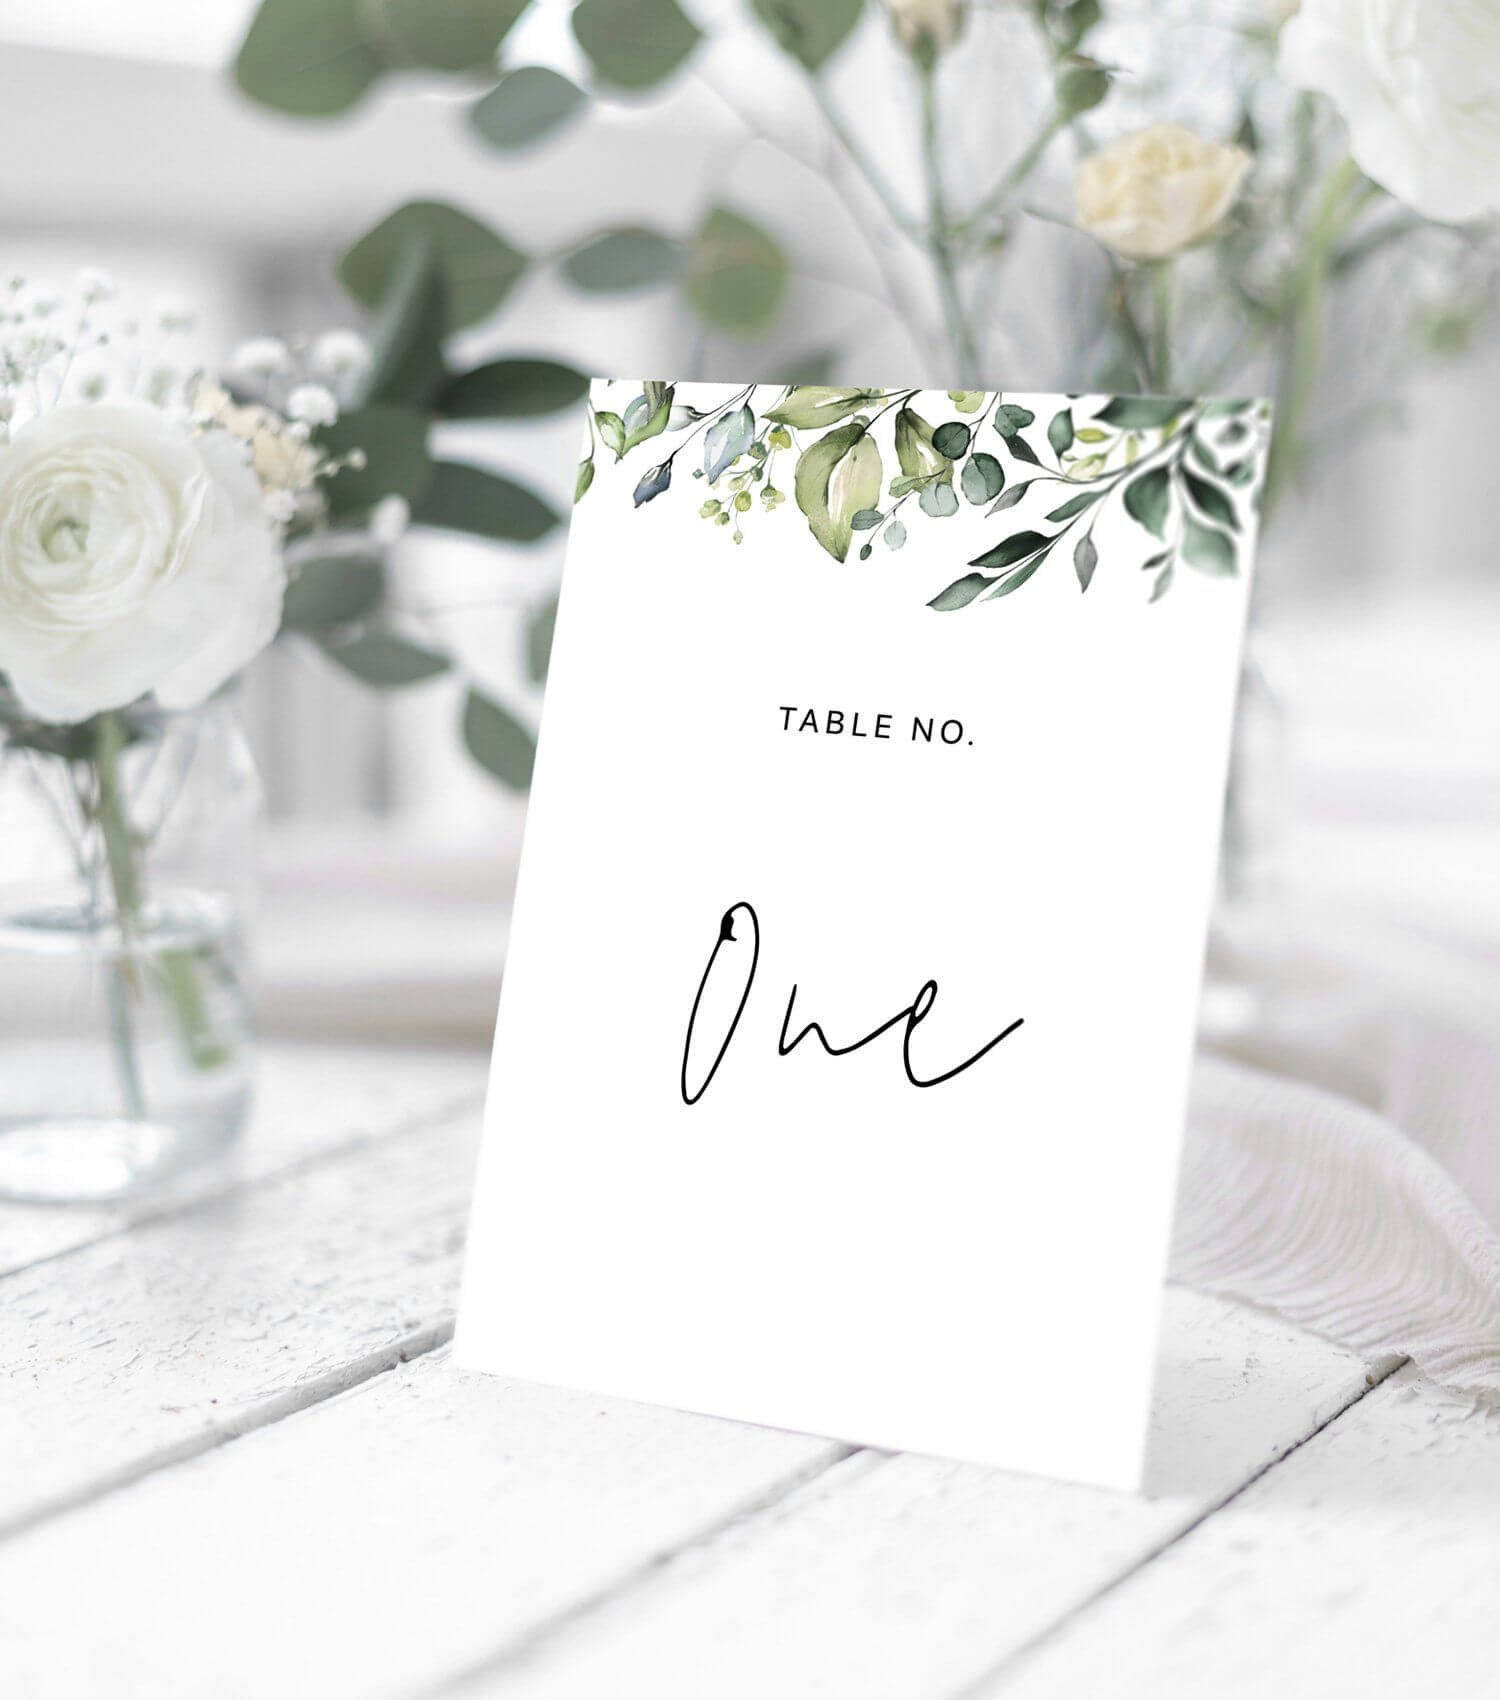 Wedding Table Number Card Template With Hand Painted In Table Number Cards Template